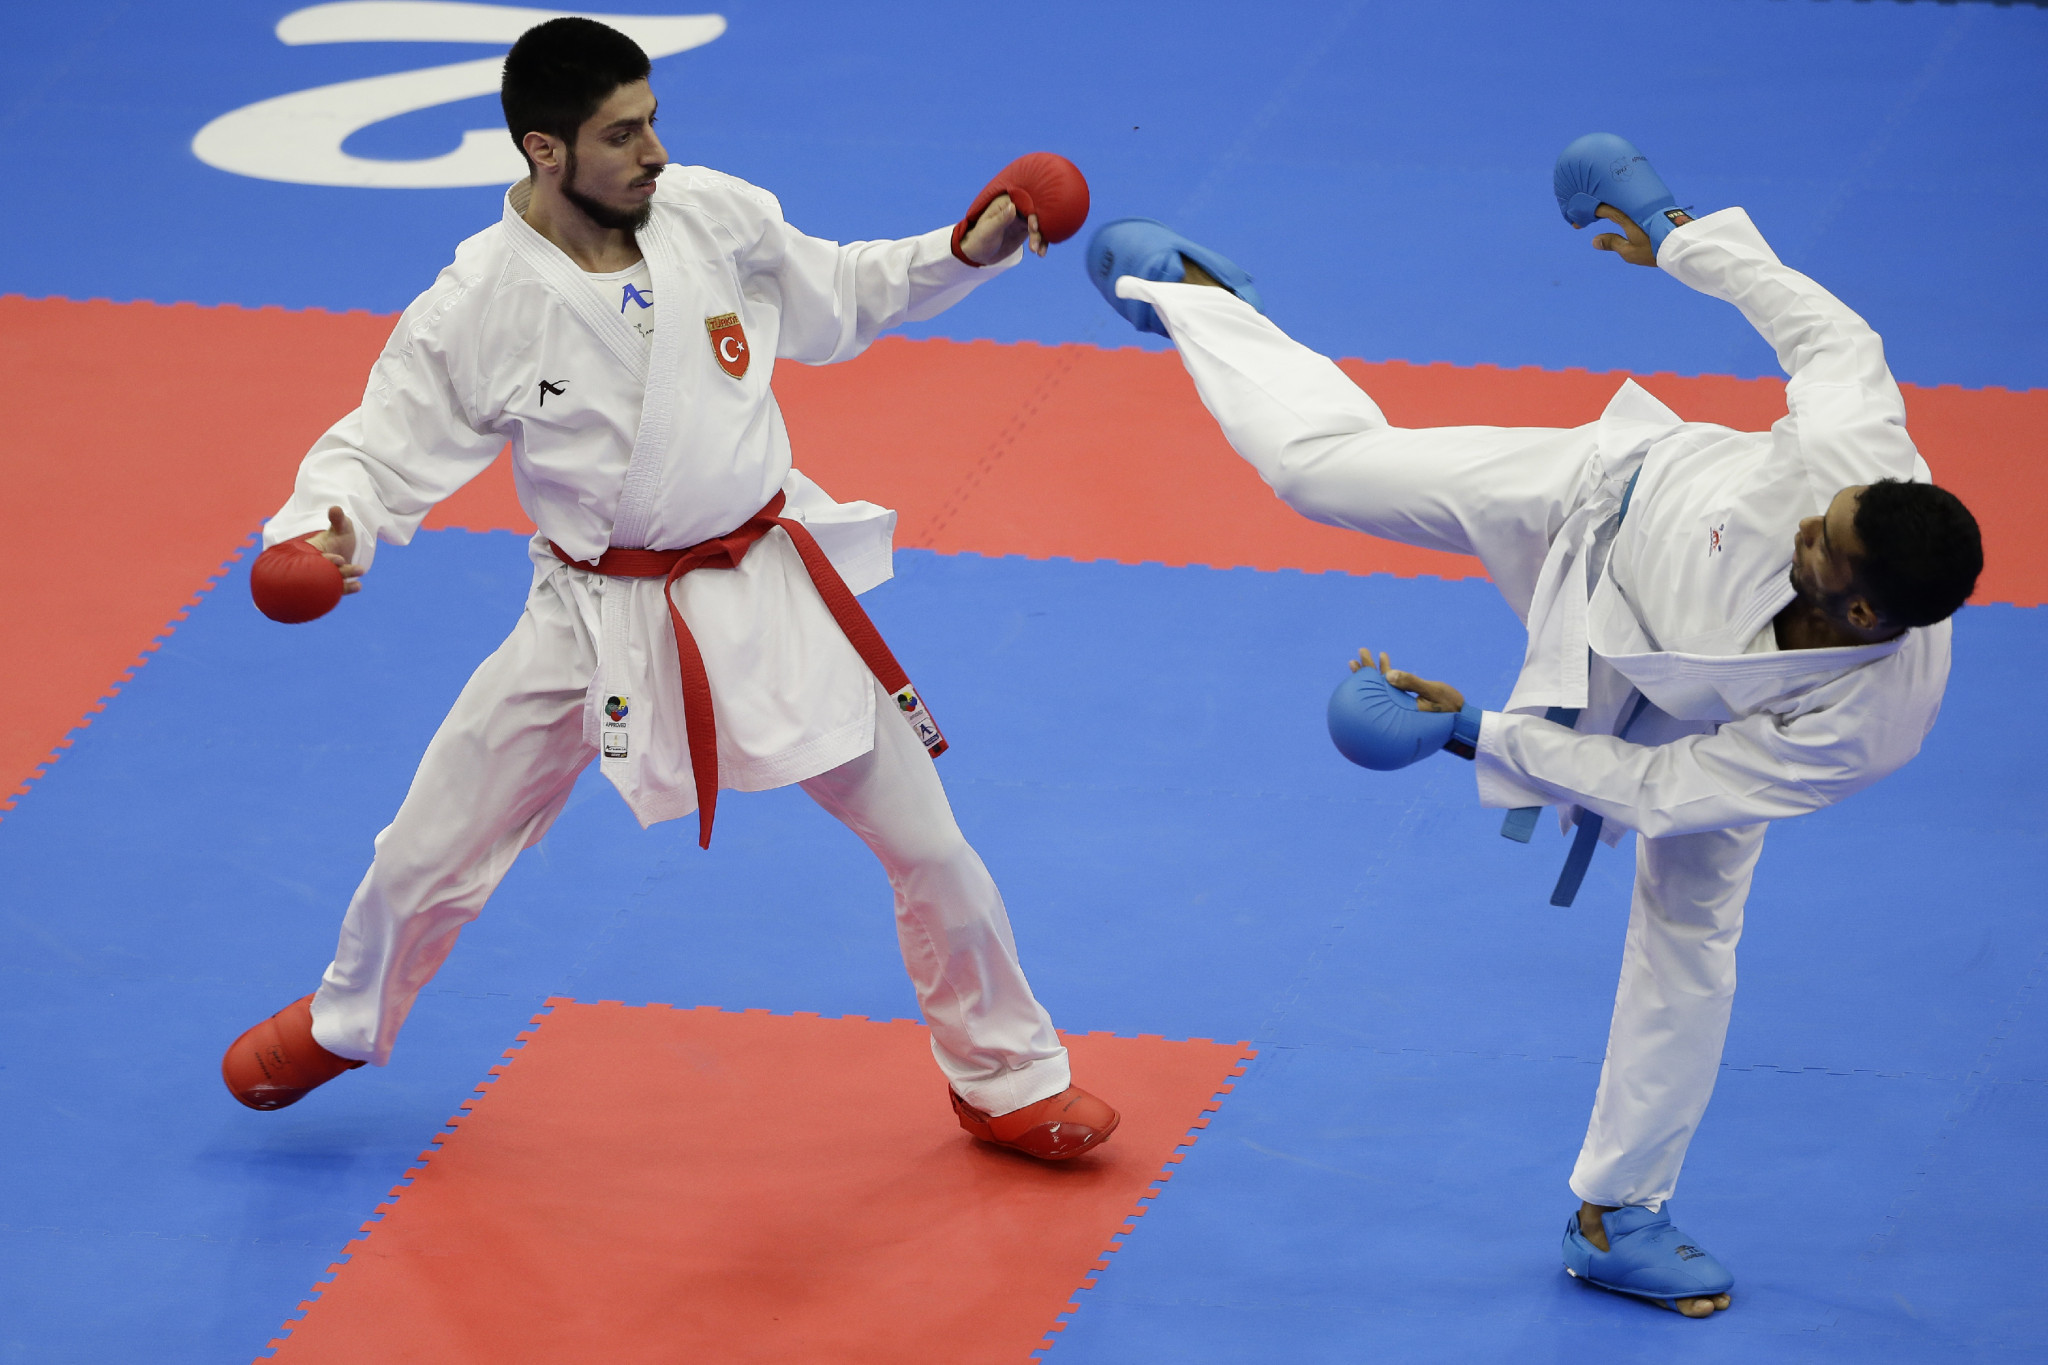 Erman Eltemur, left, knocked out reigning world champion Bahman Asgari Ghoncheh to reach the men's under-75kg final ©Getty Images